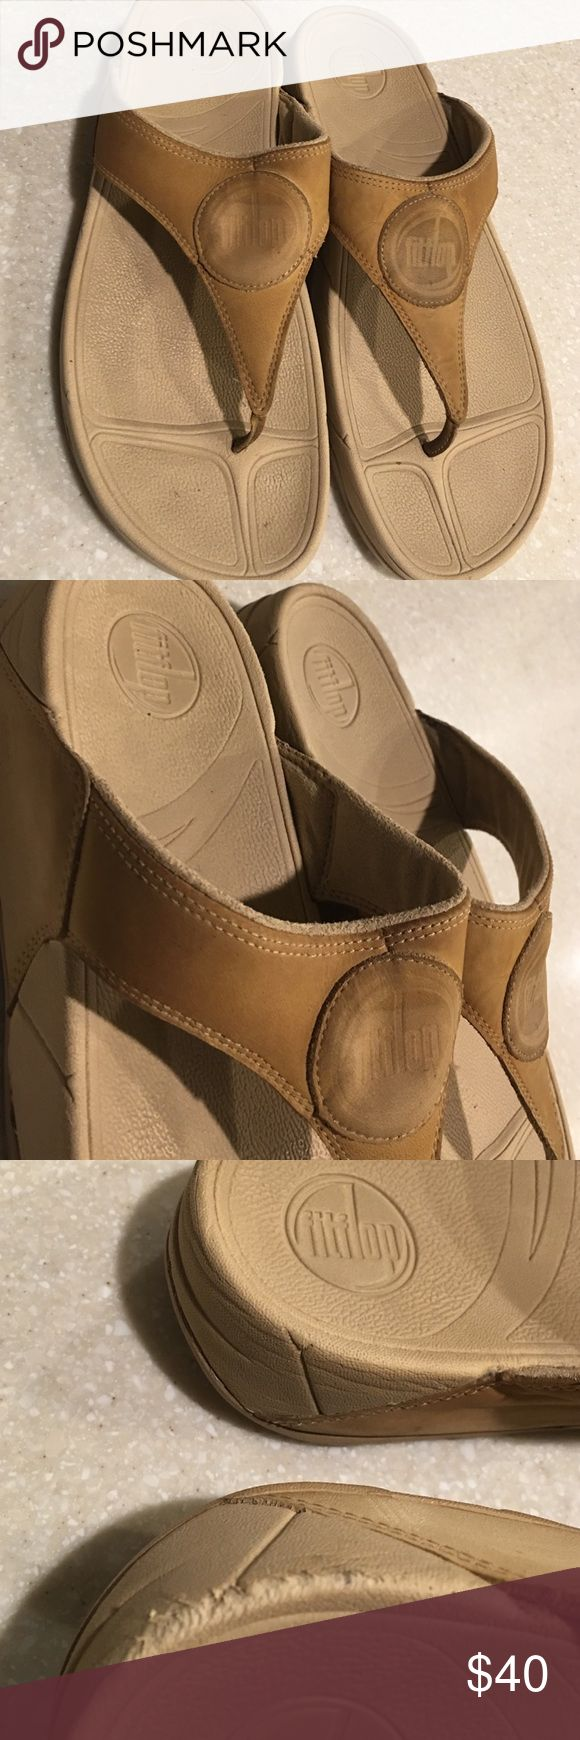 Fitflop beige slipper size 10 Has some used with some minor dirt and scuff noted. Fitflop Shoes Slippers